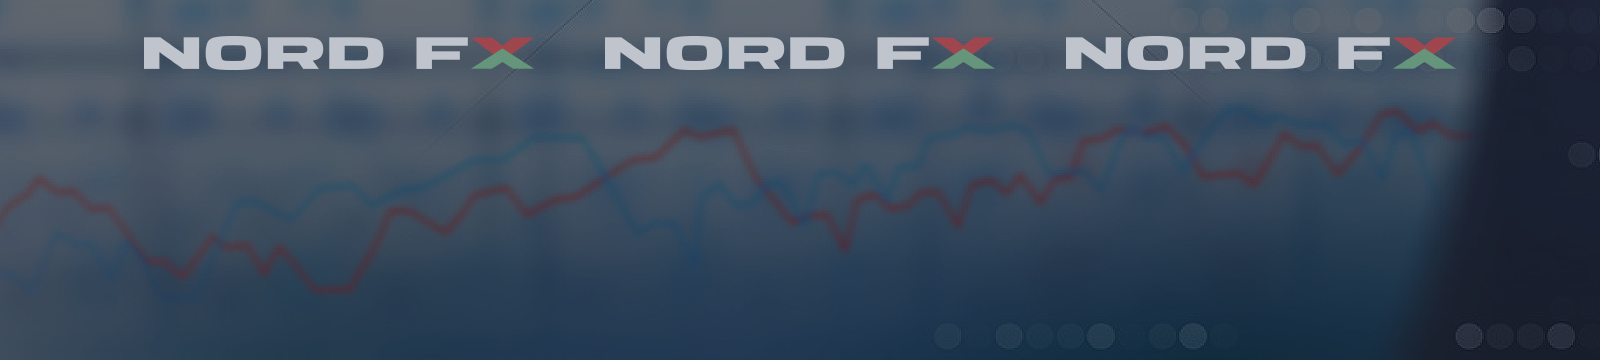 Forex Forecast and Cryptocurrencies Forecast for April 19 - 23, 2021